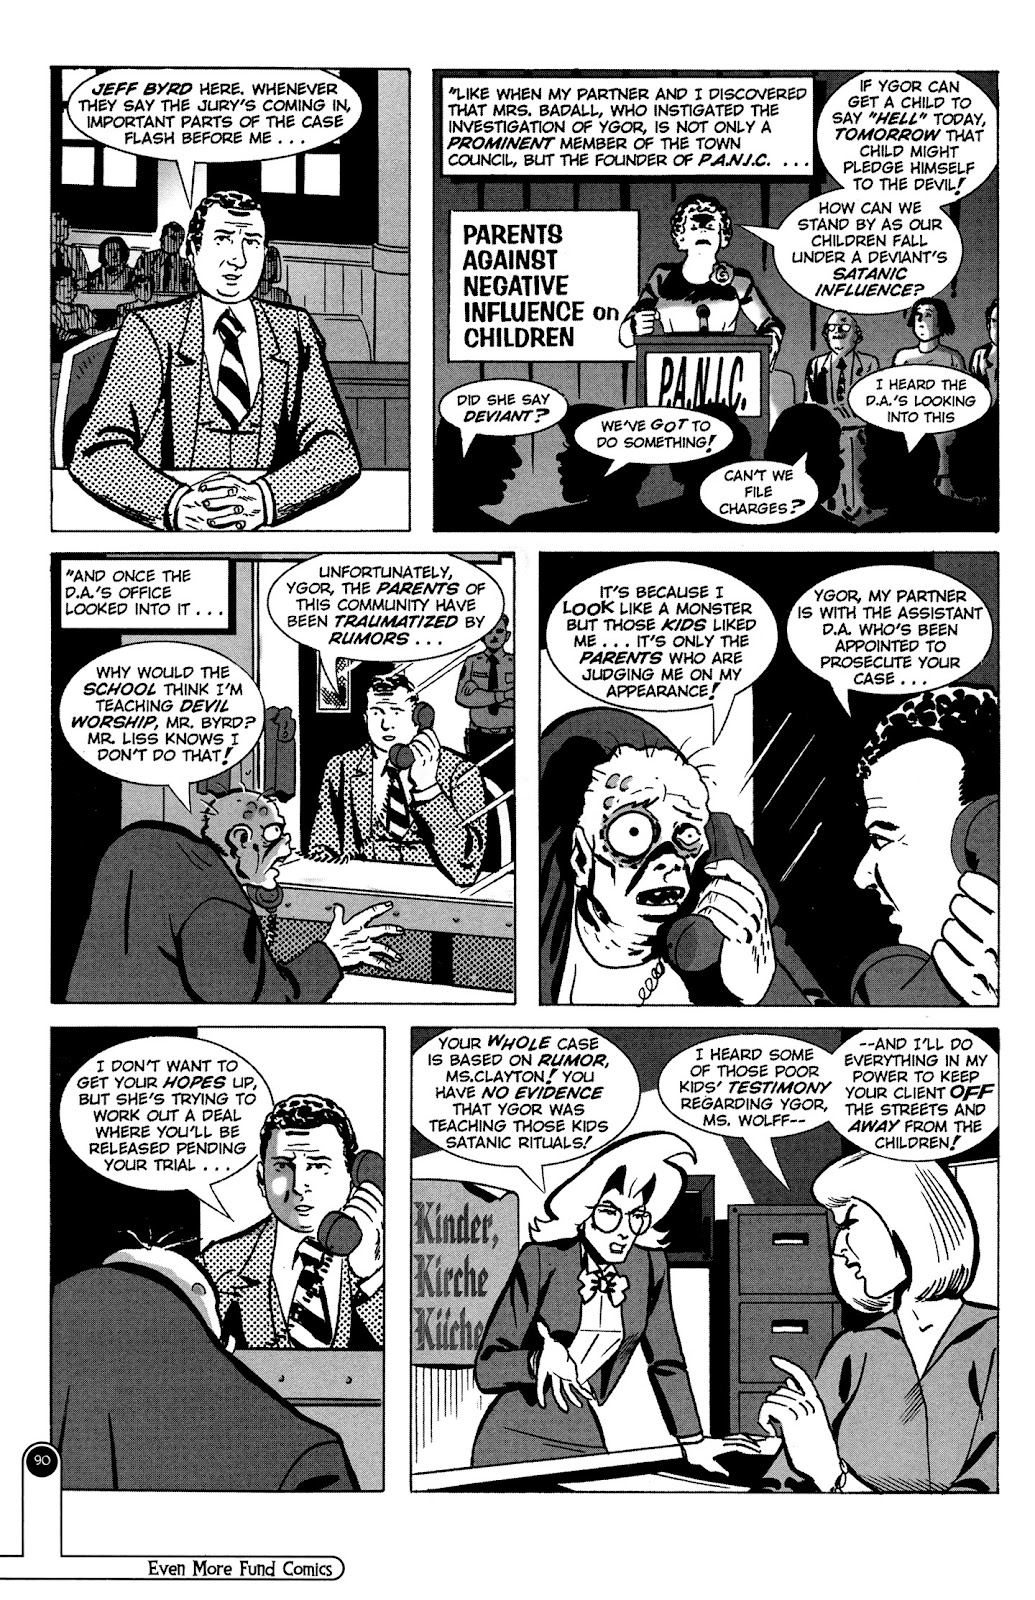 Read online Even More Fund Comics comic -  Issue # TPB (Part 1) - 90